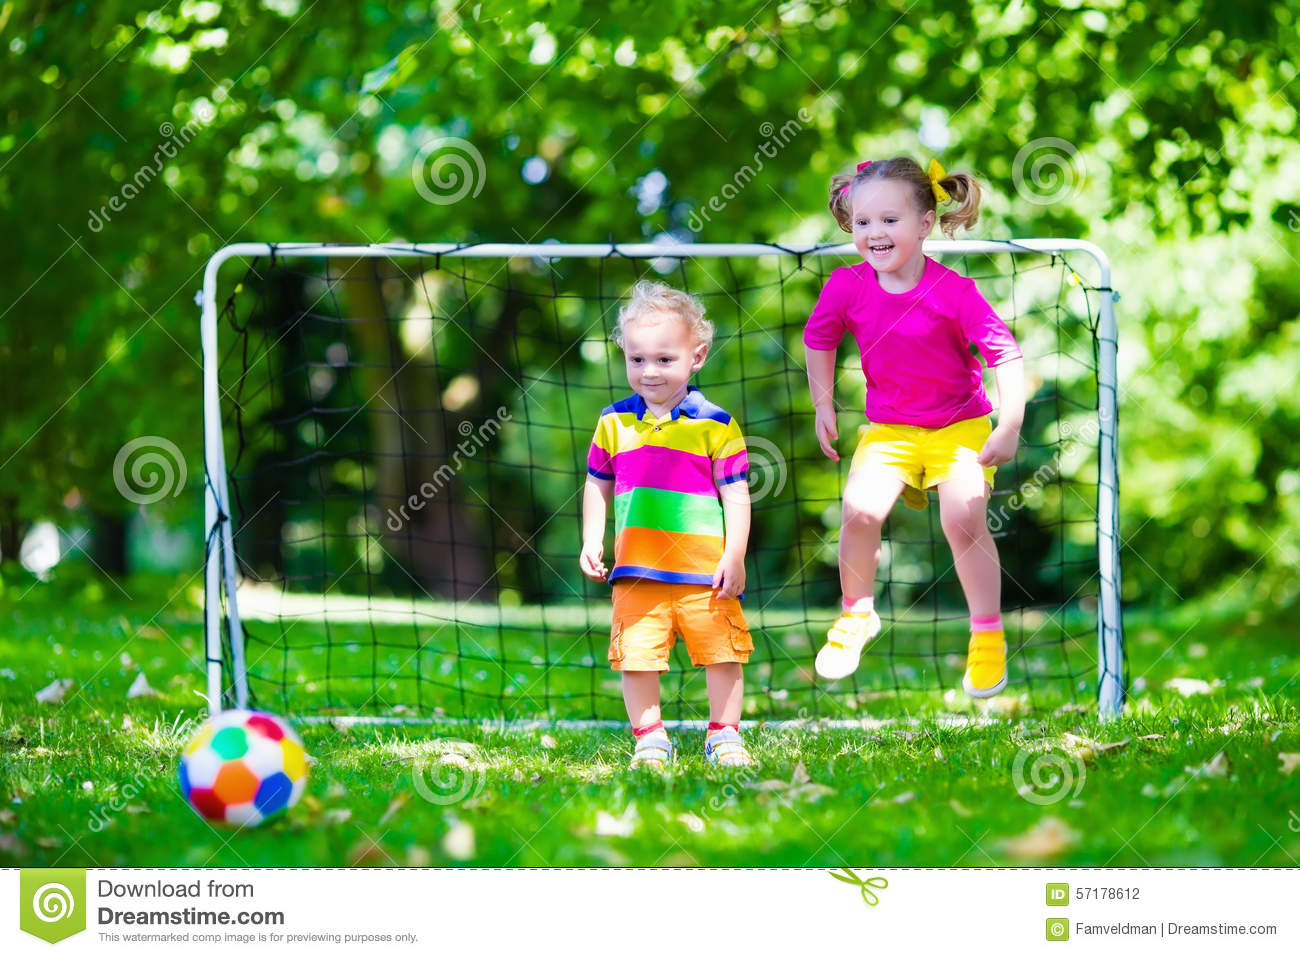 Kids playing football in school yard stock image for Childrens play yard